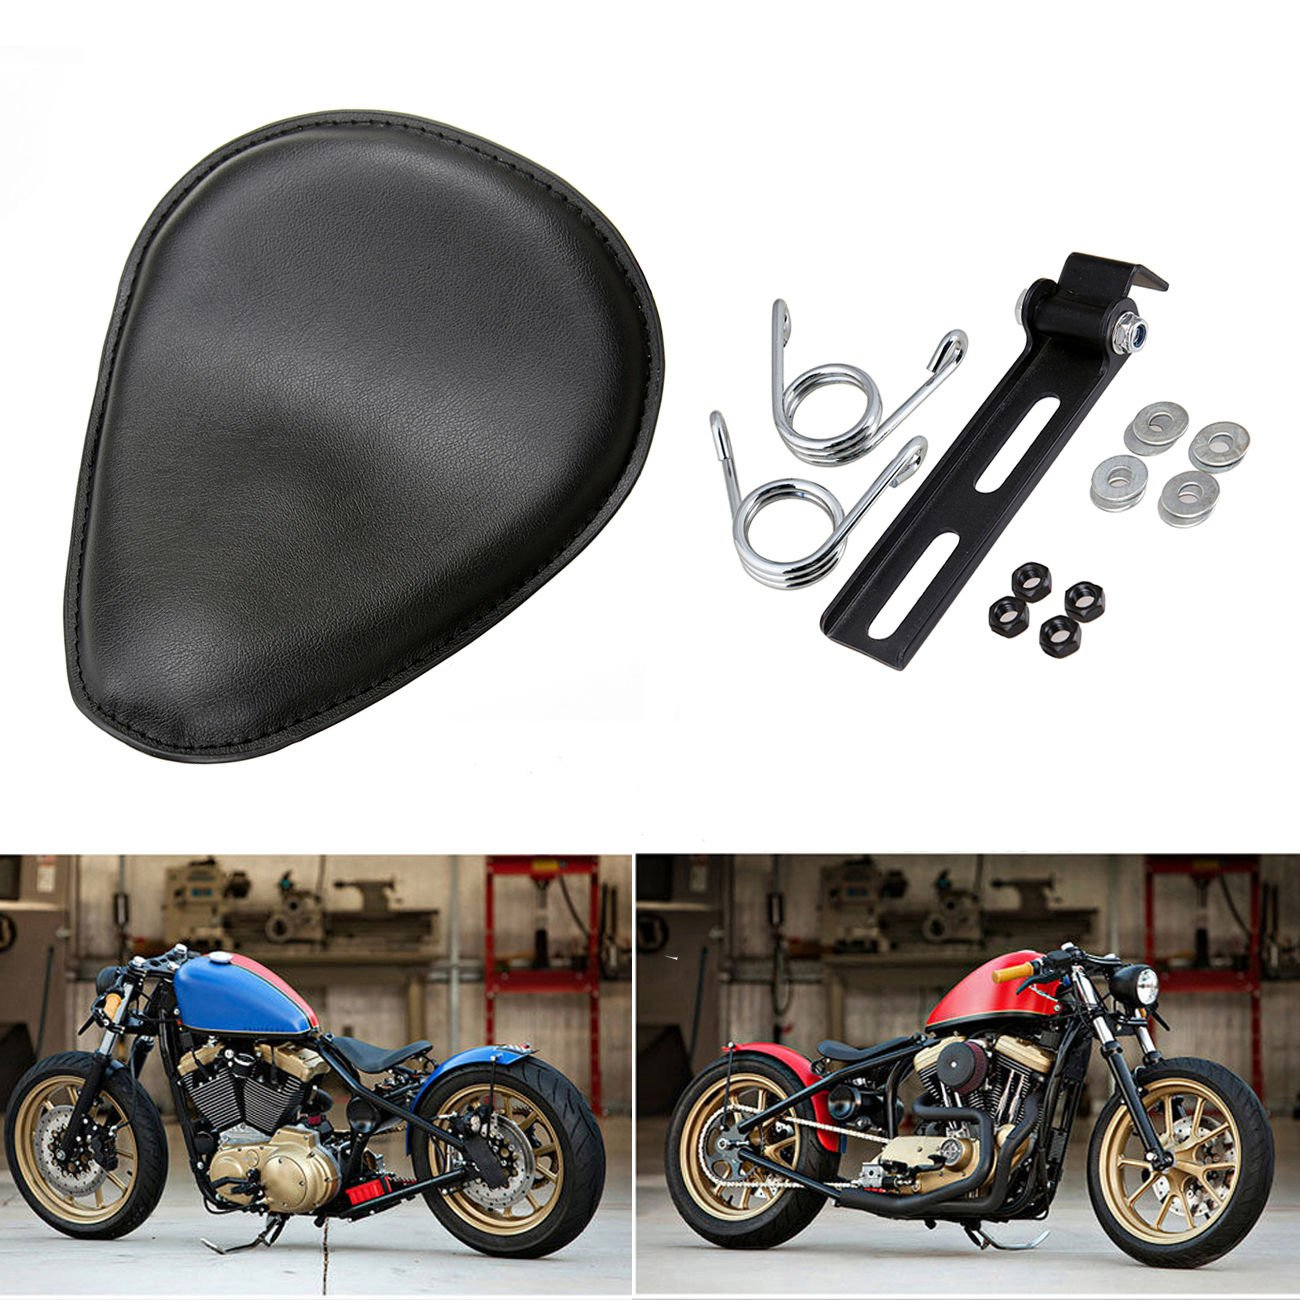 Ridgeyard Motorcycle Solo Seat with 3.5' Torsion Spring Bracket for Harley Davidson Sportster Bobber Chopper Custom Ridgeyard Co ltd